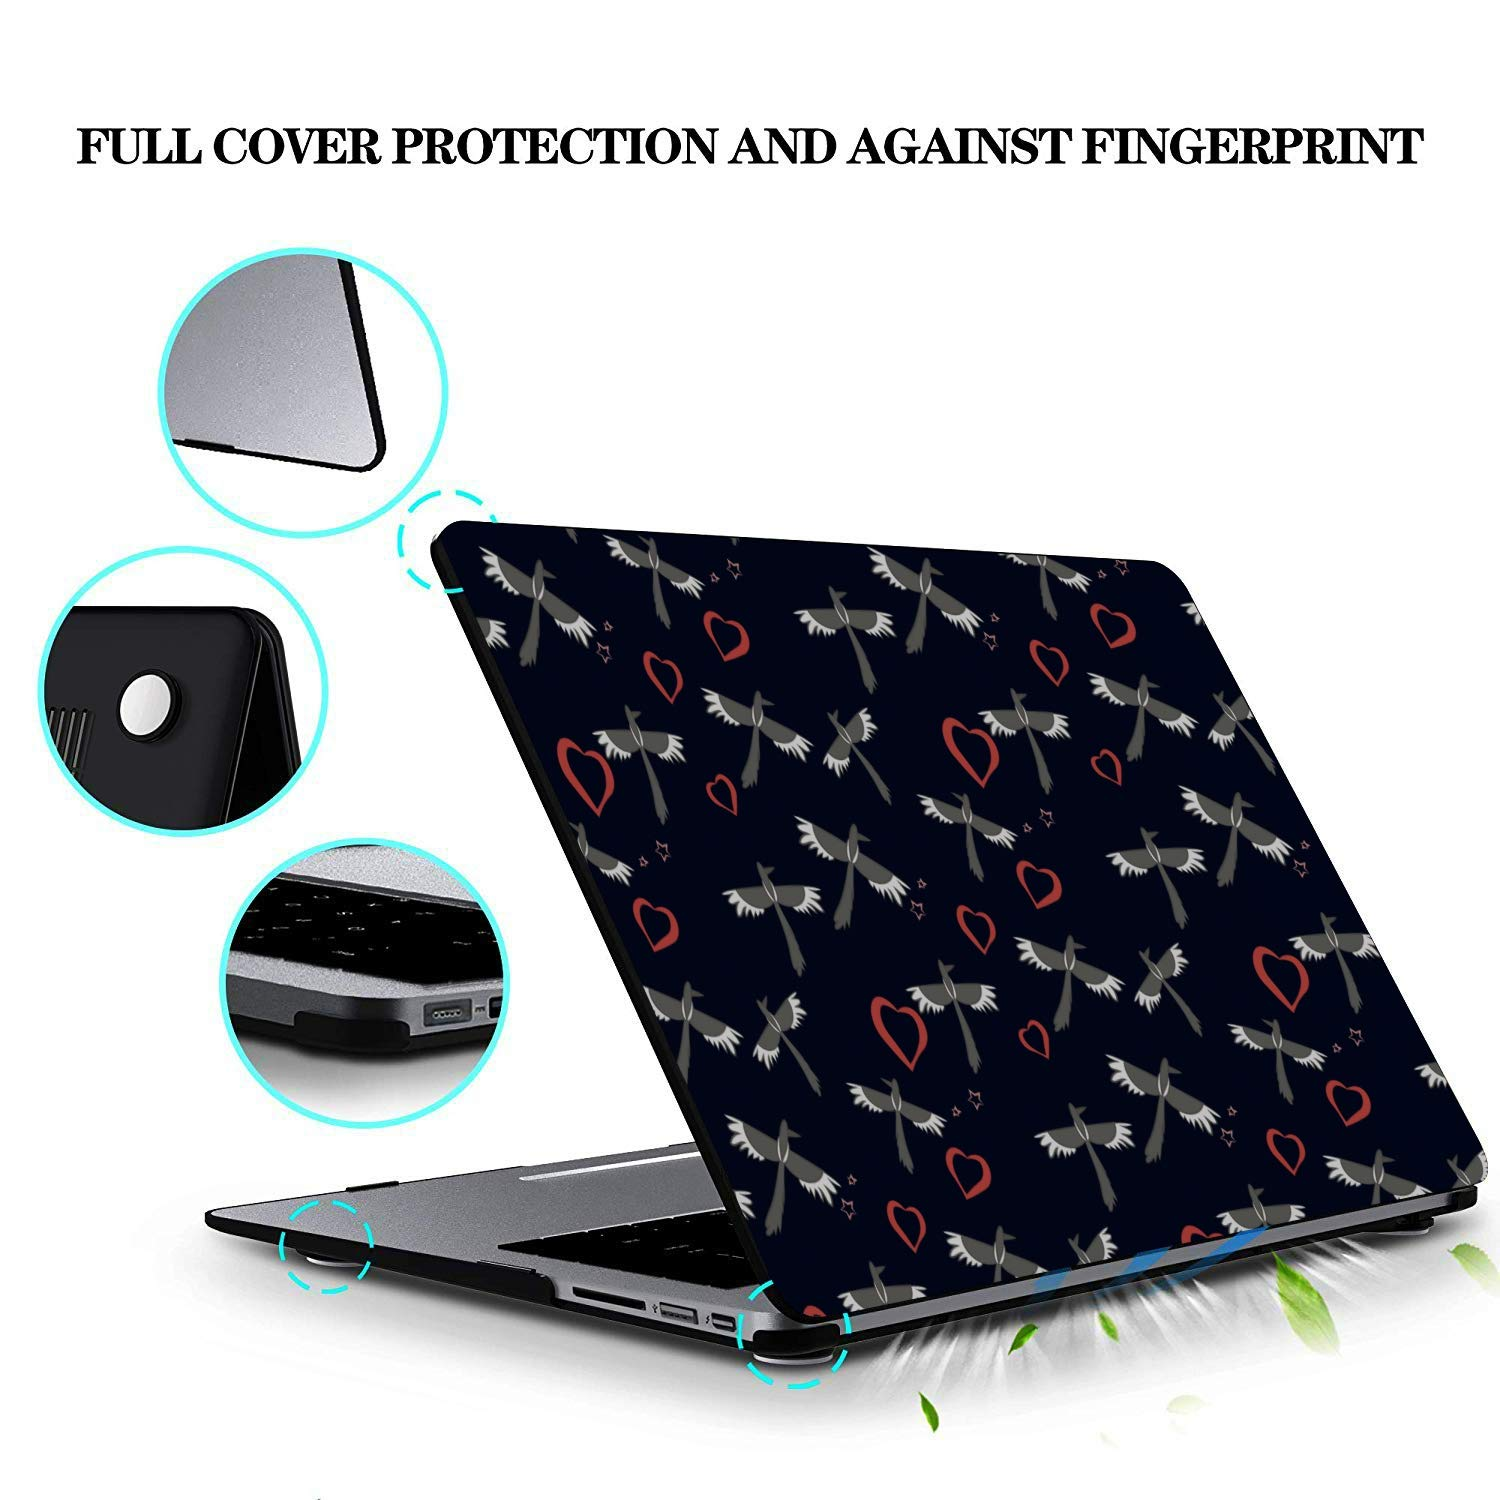 MacBook Air Shell Spring Cute Hummingbirds Flowers Plastic Hard Shell Compatible Mac Air 11 Pro 13 15 MacBook Air 13 Accessories Protection for MacBook 2016-2019 Version